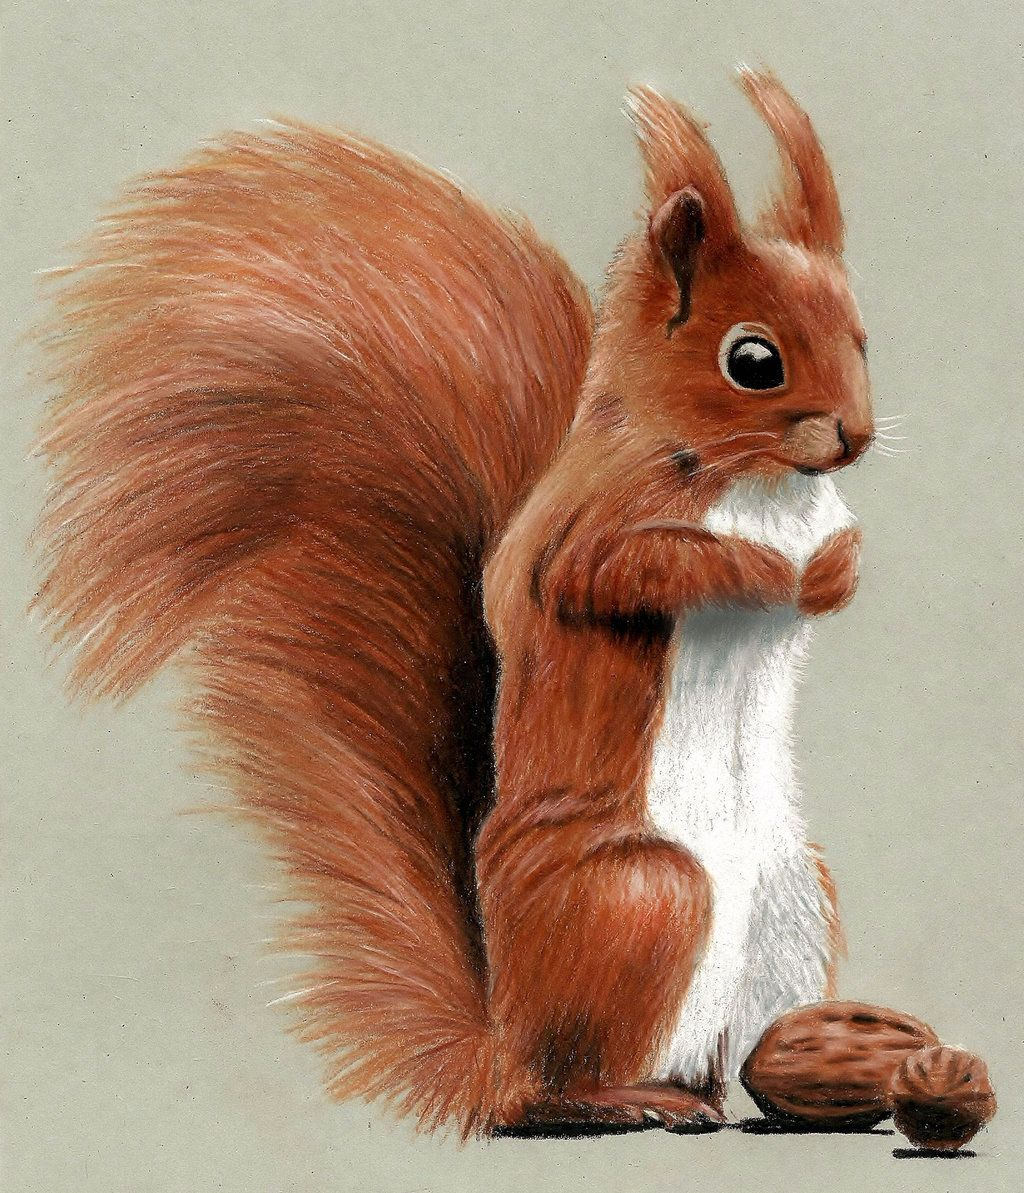 Uncategorized How To Draw A Realistic Squirrel cute squirrel drawing with colored pencils by jasminasusak deviantart com on deviantart